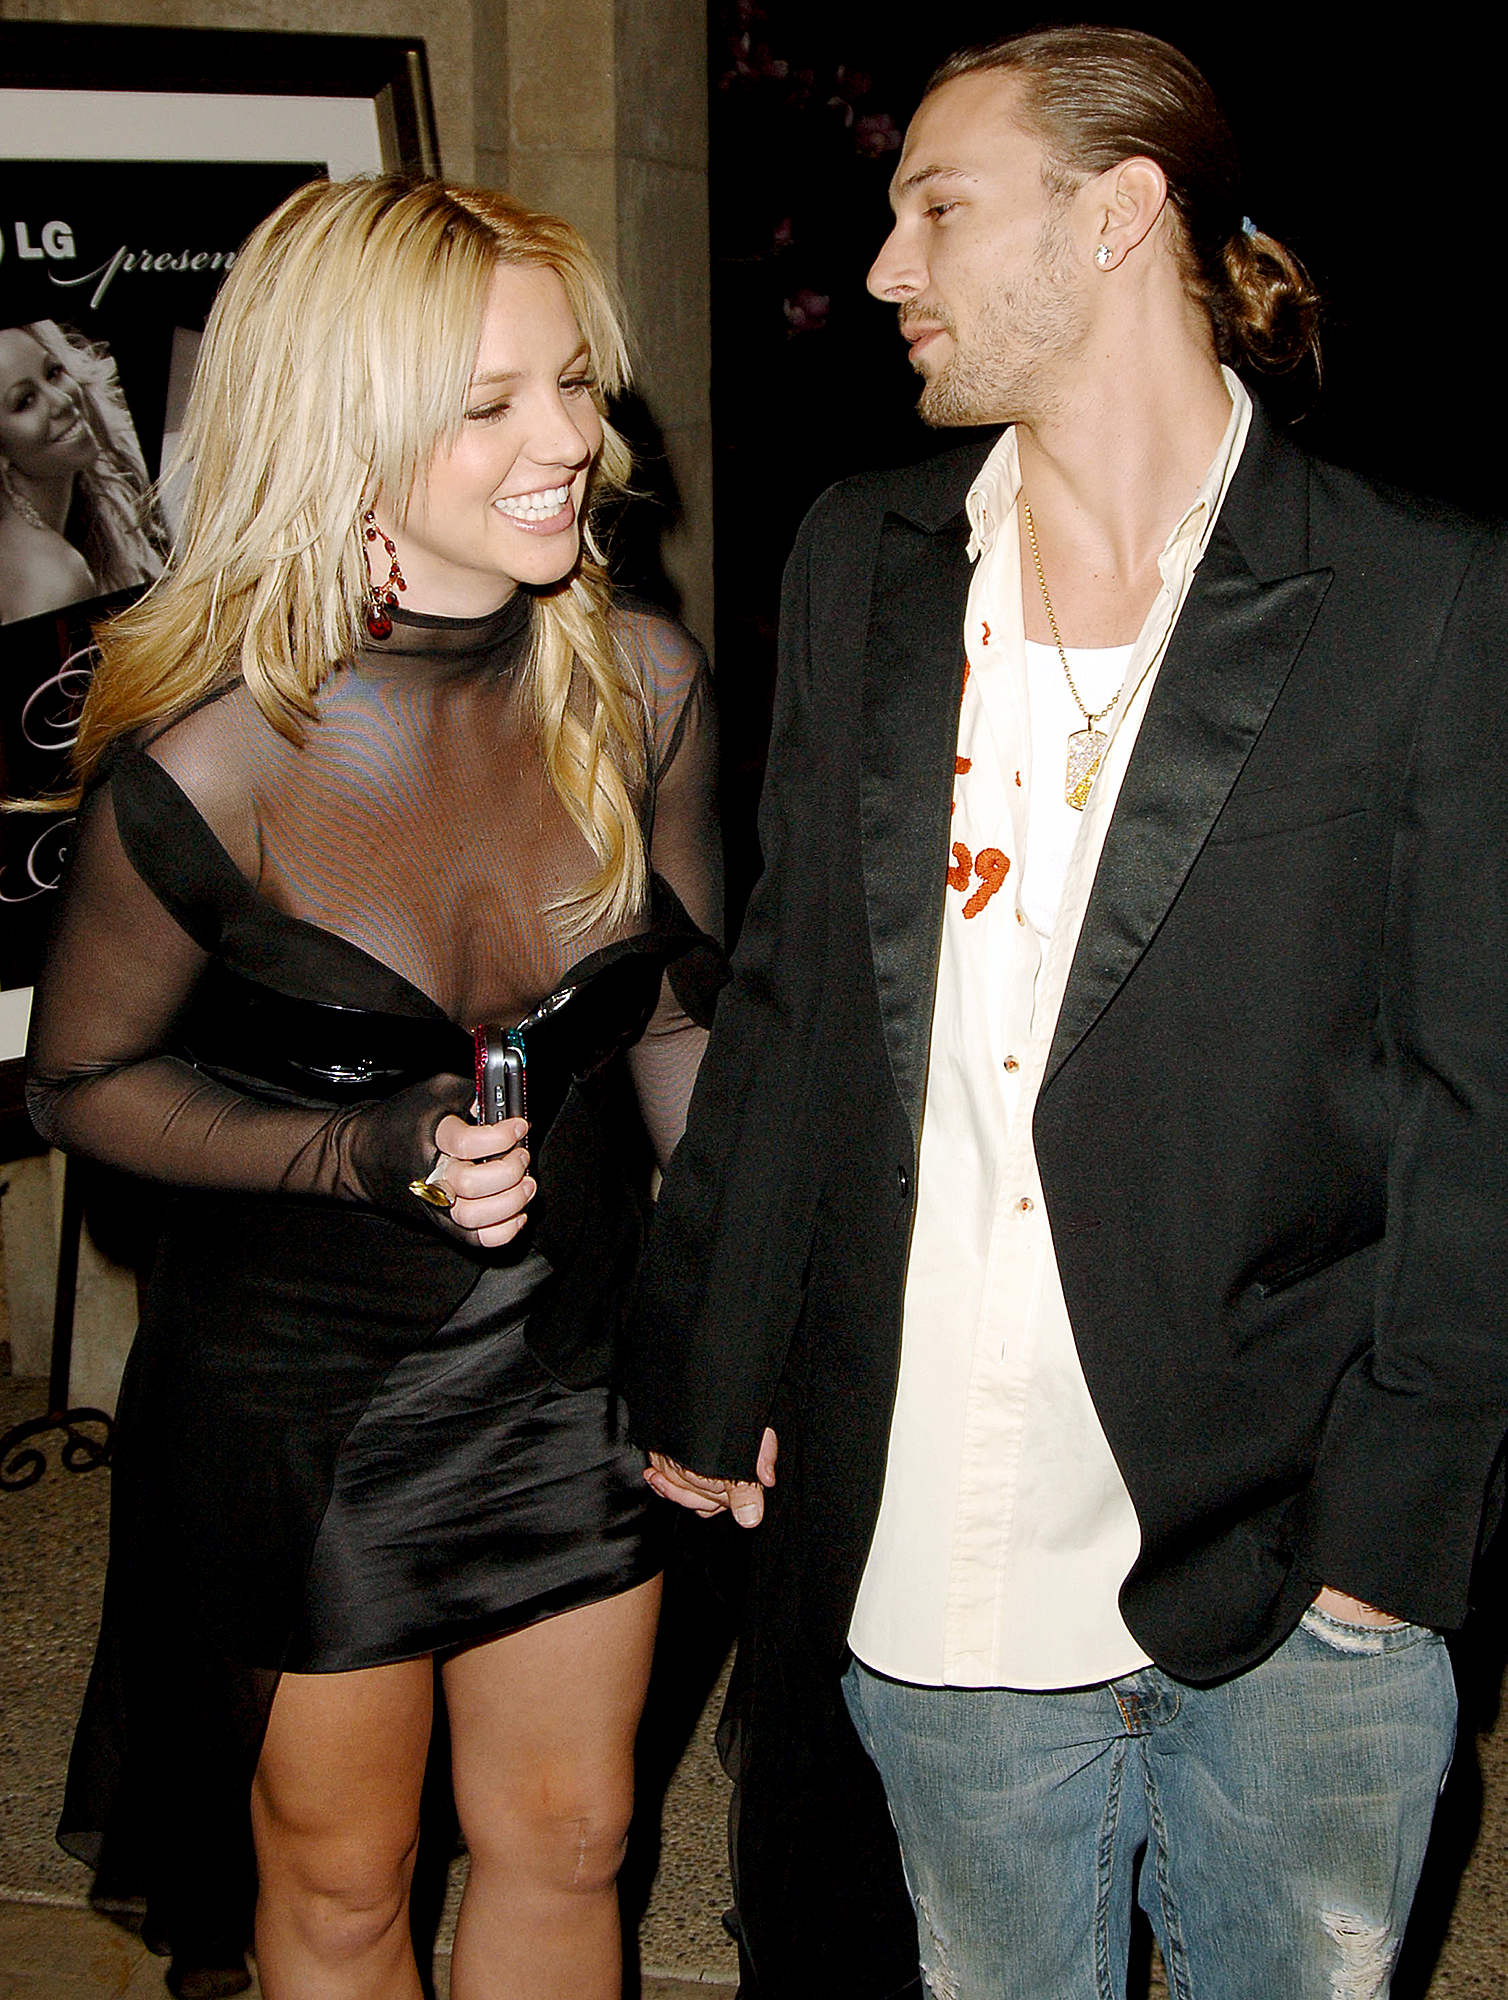 July-2007-Kevin-Federline,-Britney-Spears - The one-time couple's divorce was finalized in July 2007, with the parents planning to share equal custody at the time.